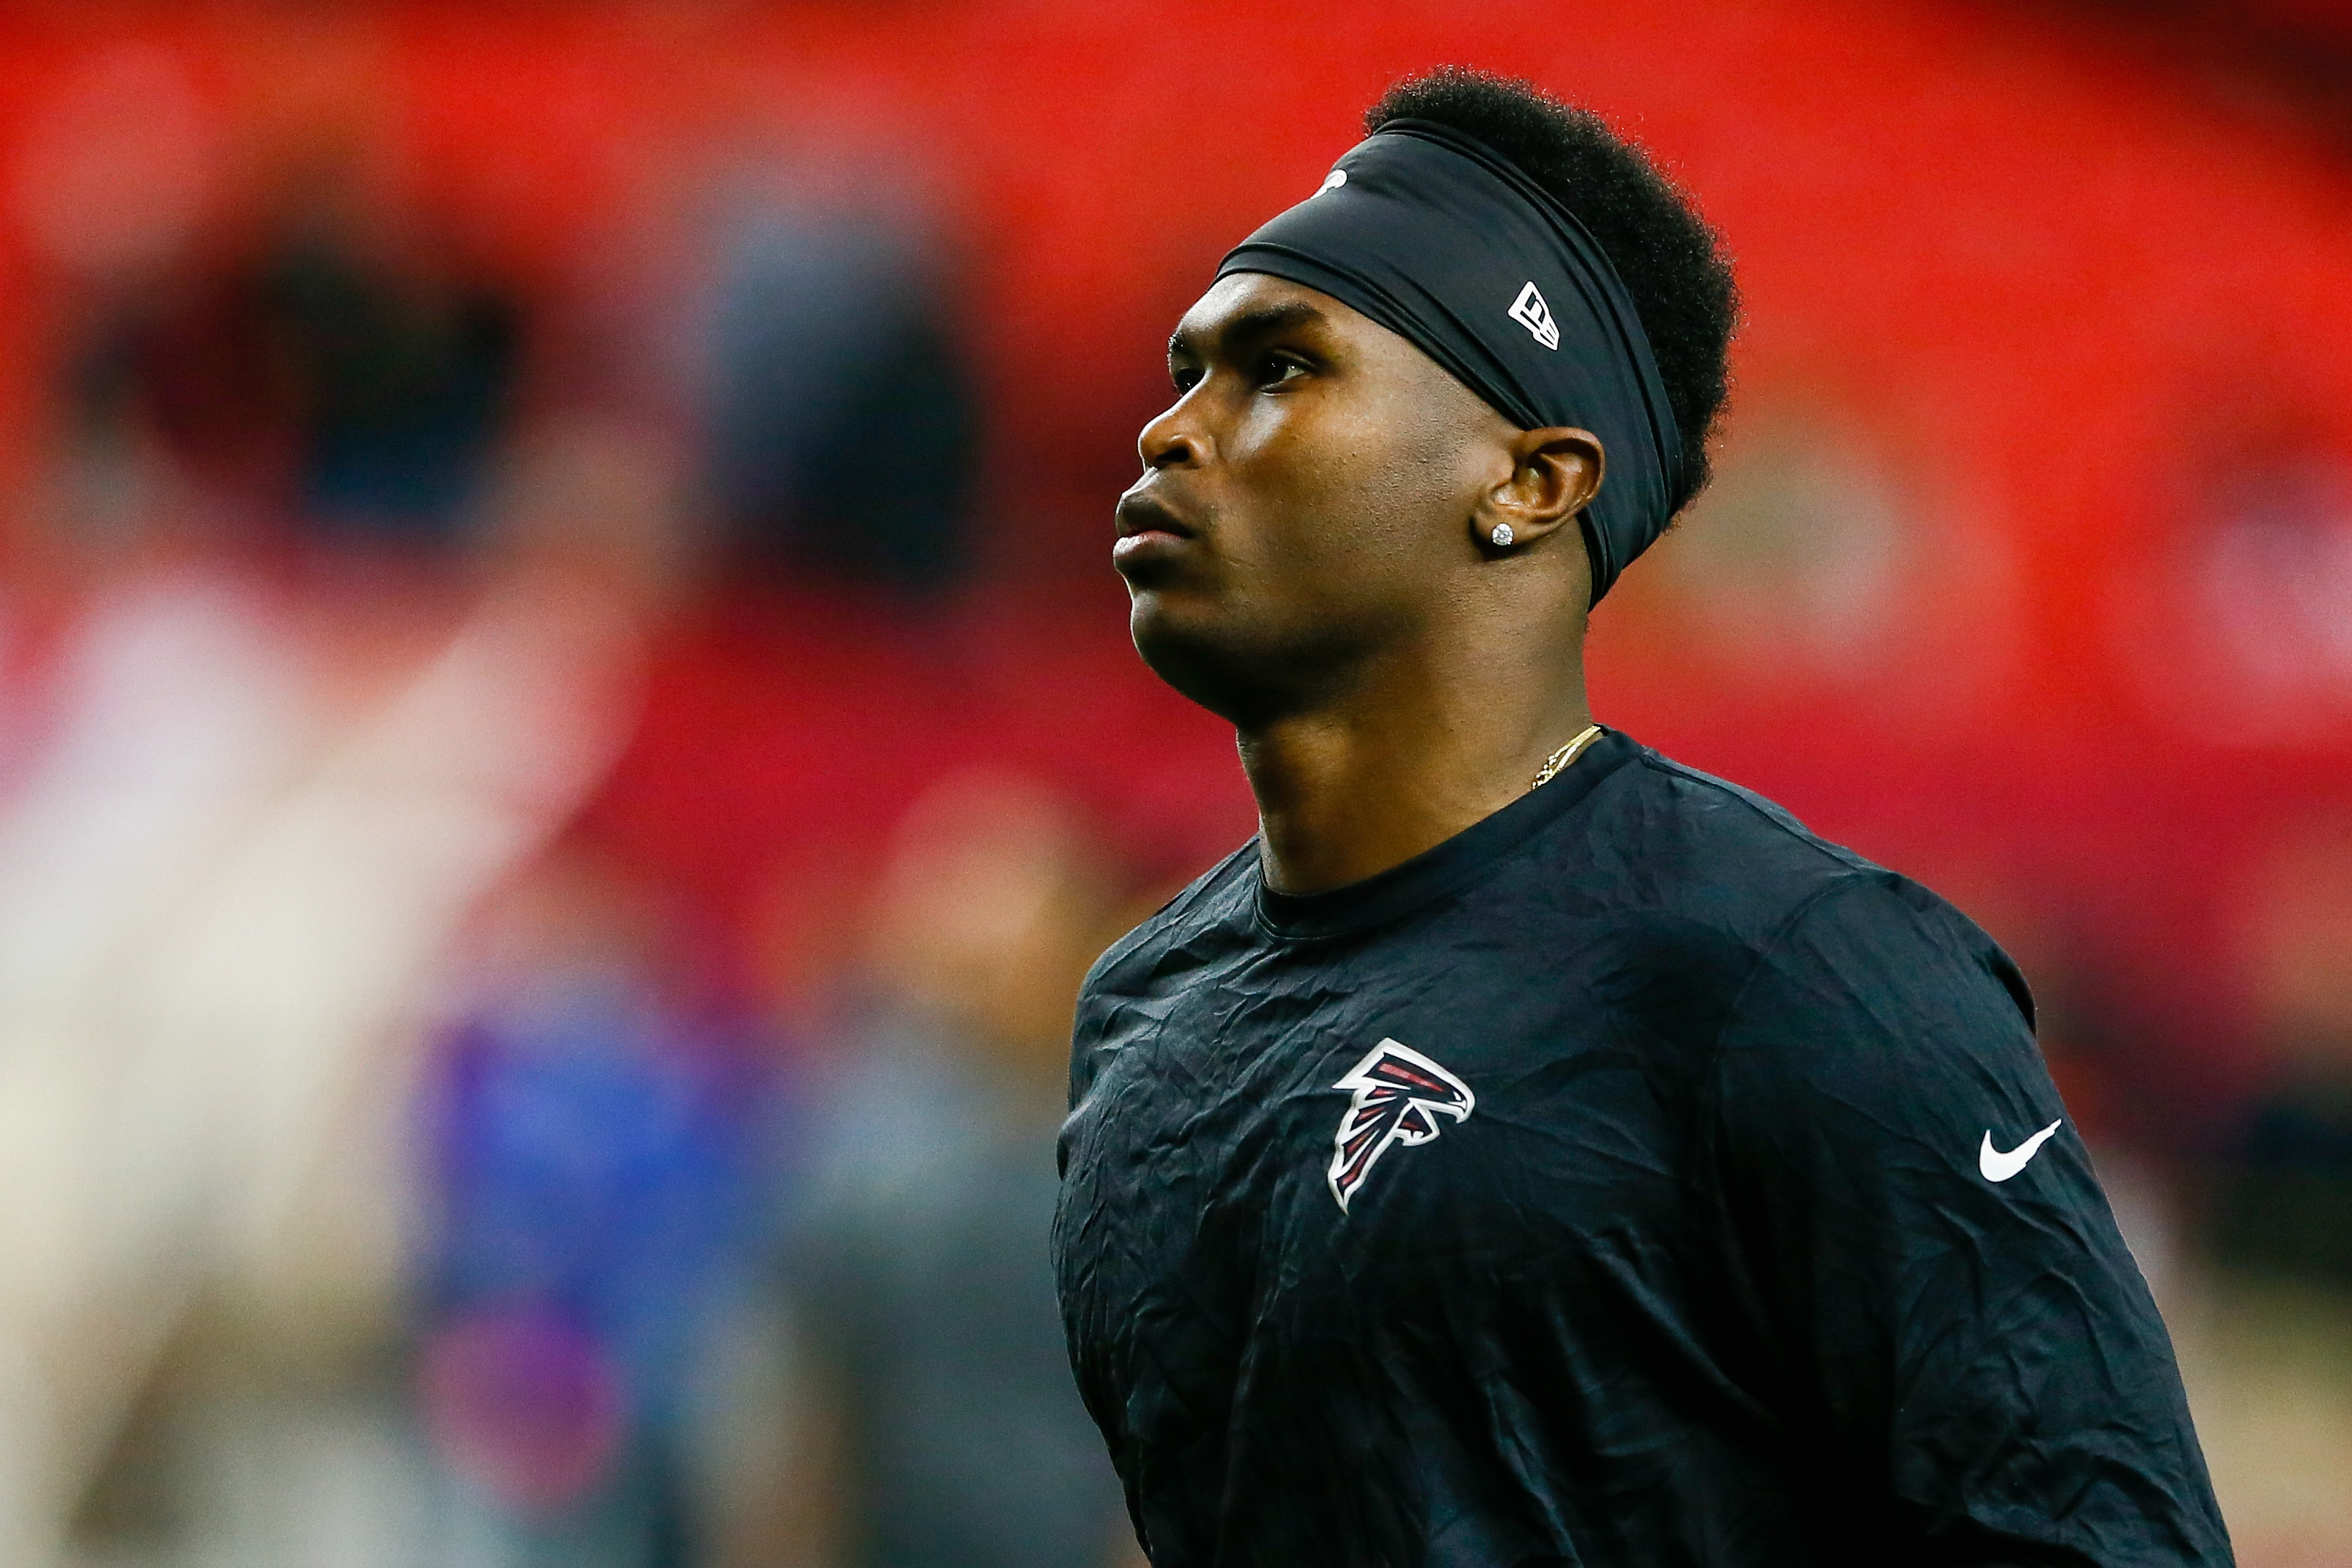 Atlanta Falcons Must Get Julio Jones Locked Up To New Deal This Given Sunday